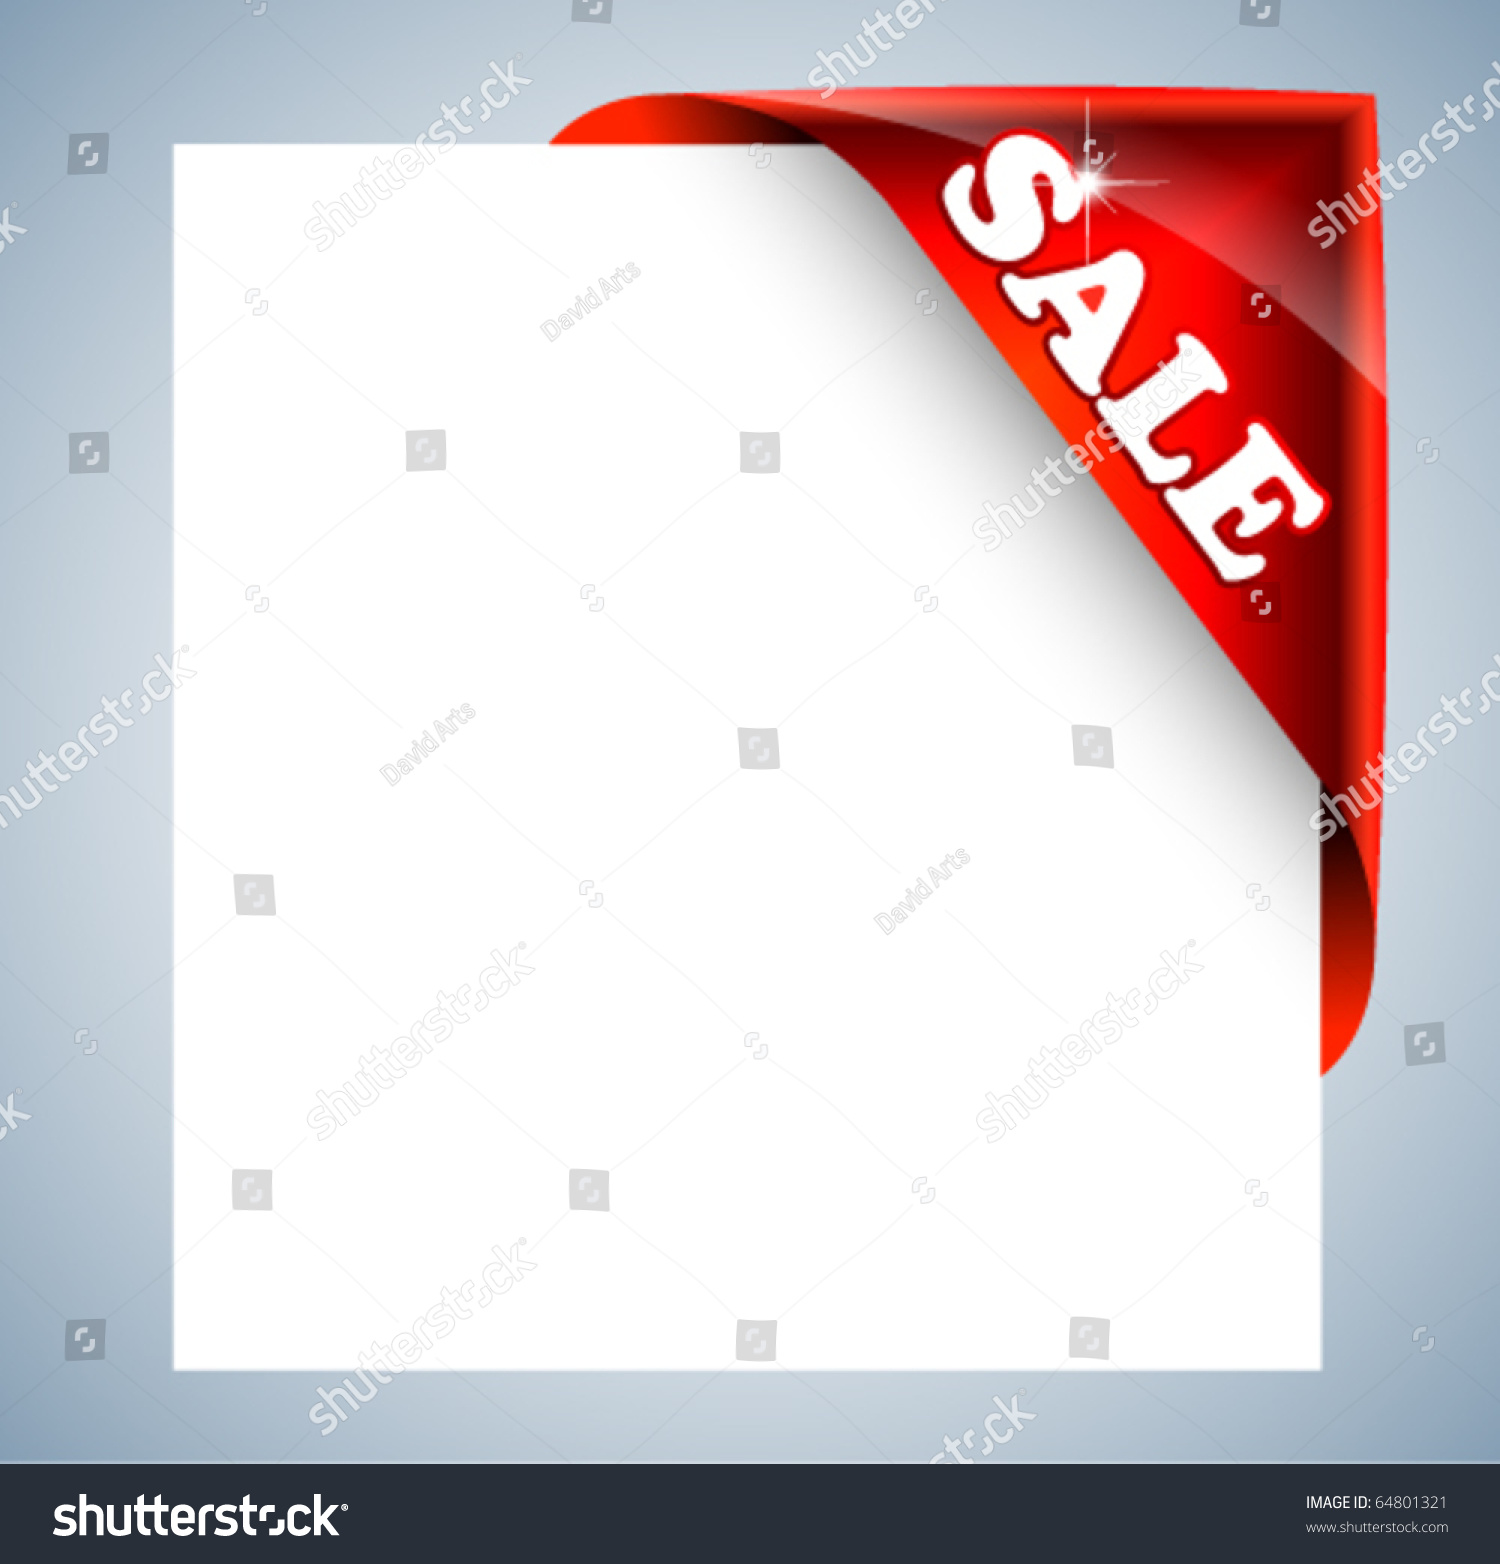 colorful corner christmas tag for discount image framing - Discount Framing